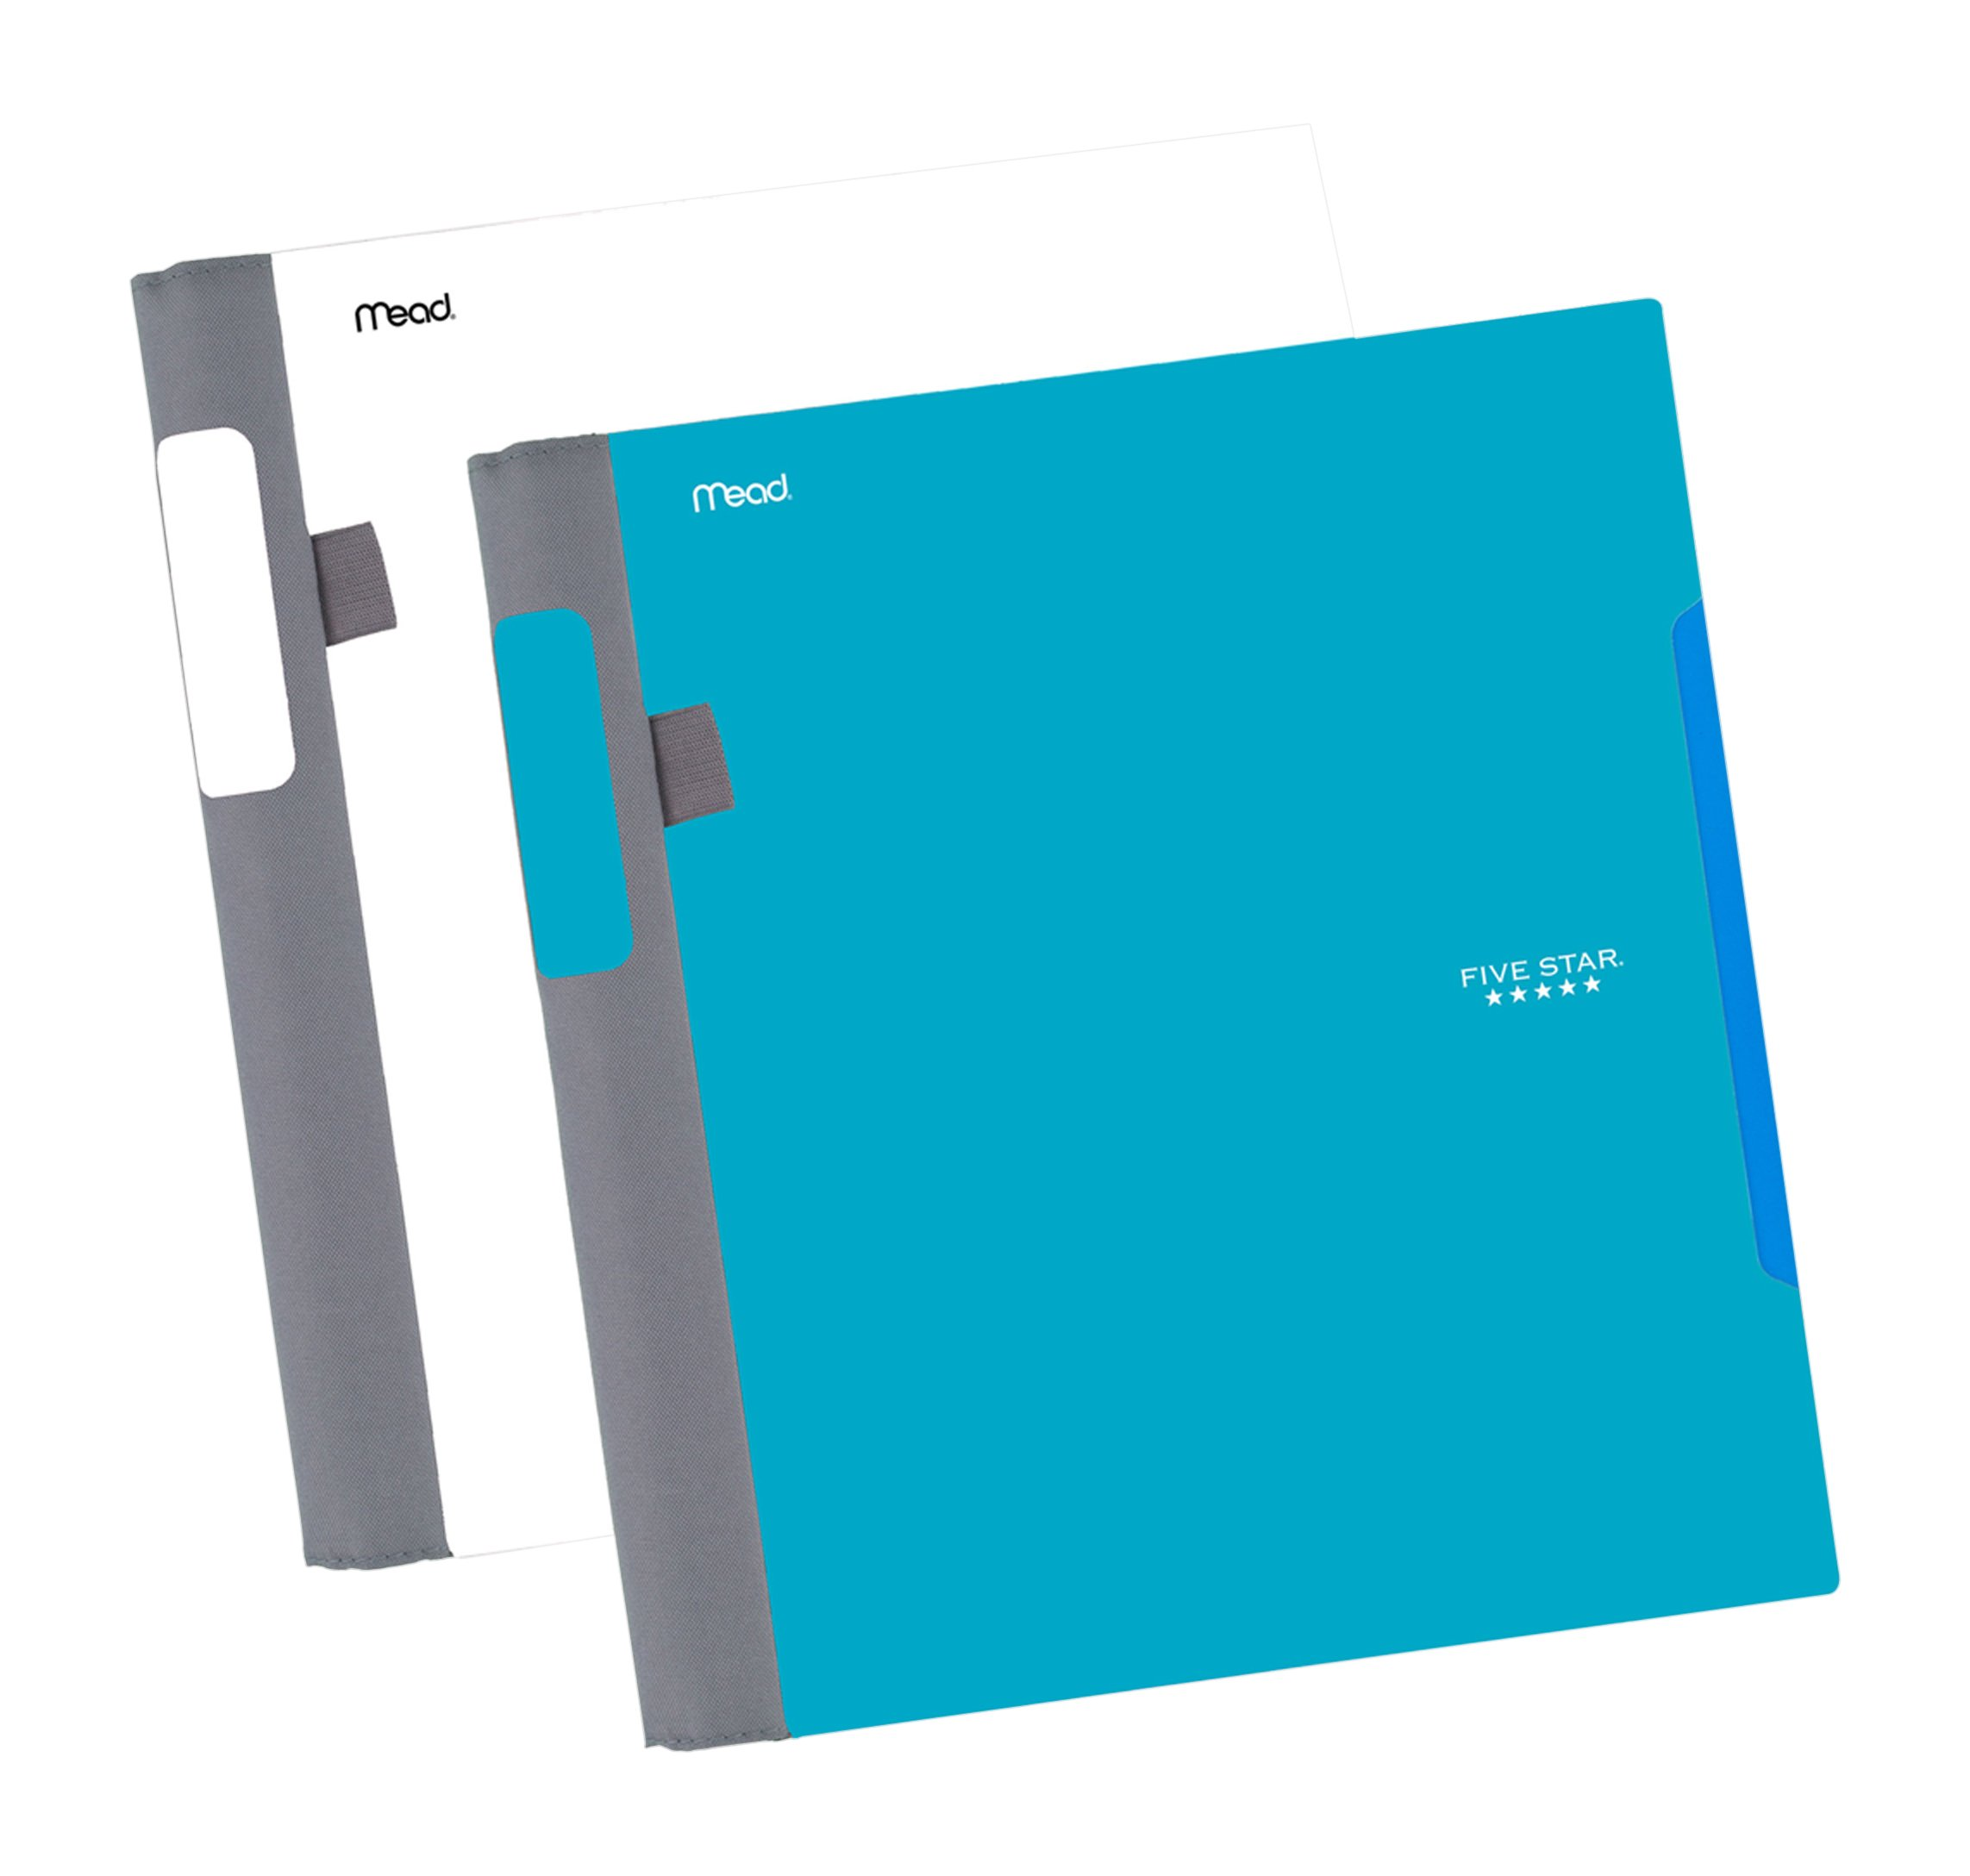 """Five Star Advance Spiral Notebooks, 1 Subject, College Ruled Paper, 100 Sheets, 11"""" x 8-1/2"""", Teal, White, 2 Pack (73172)"""